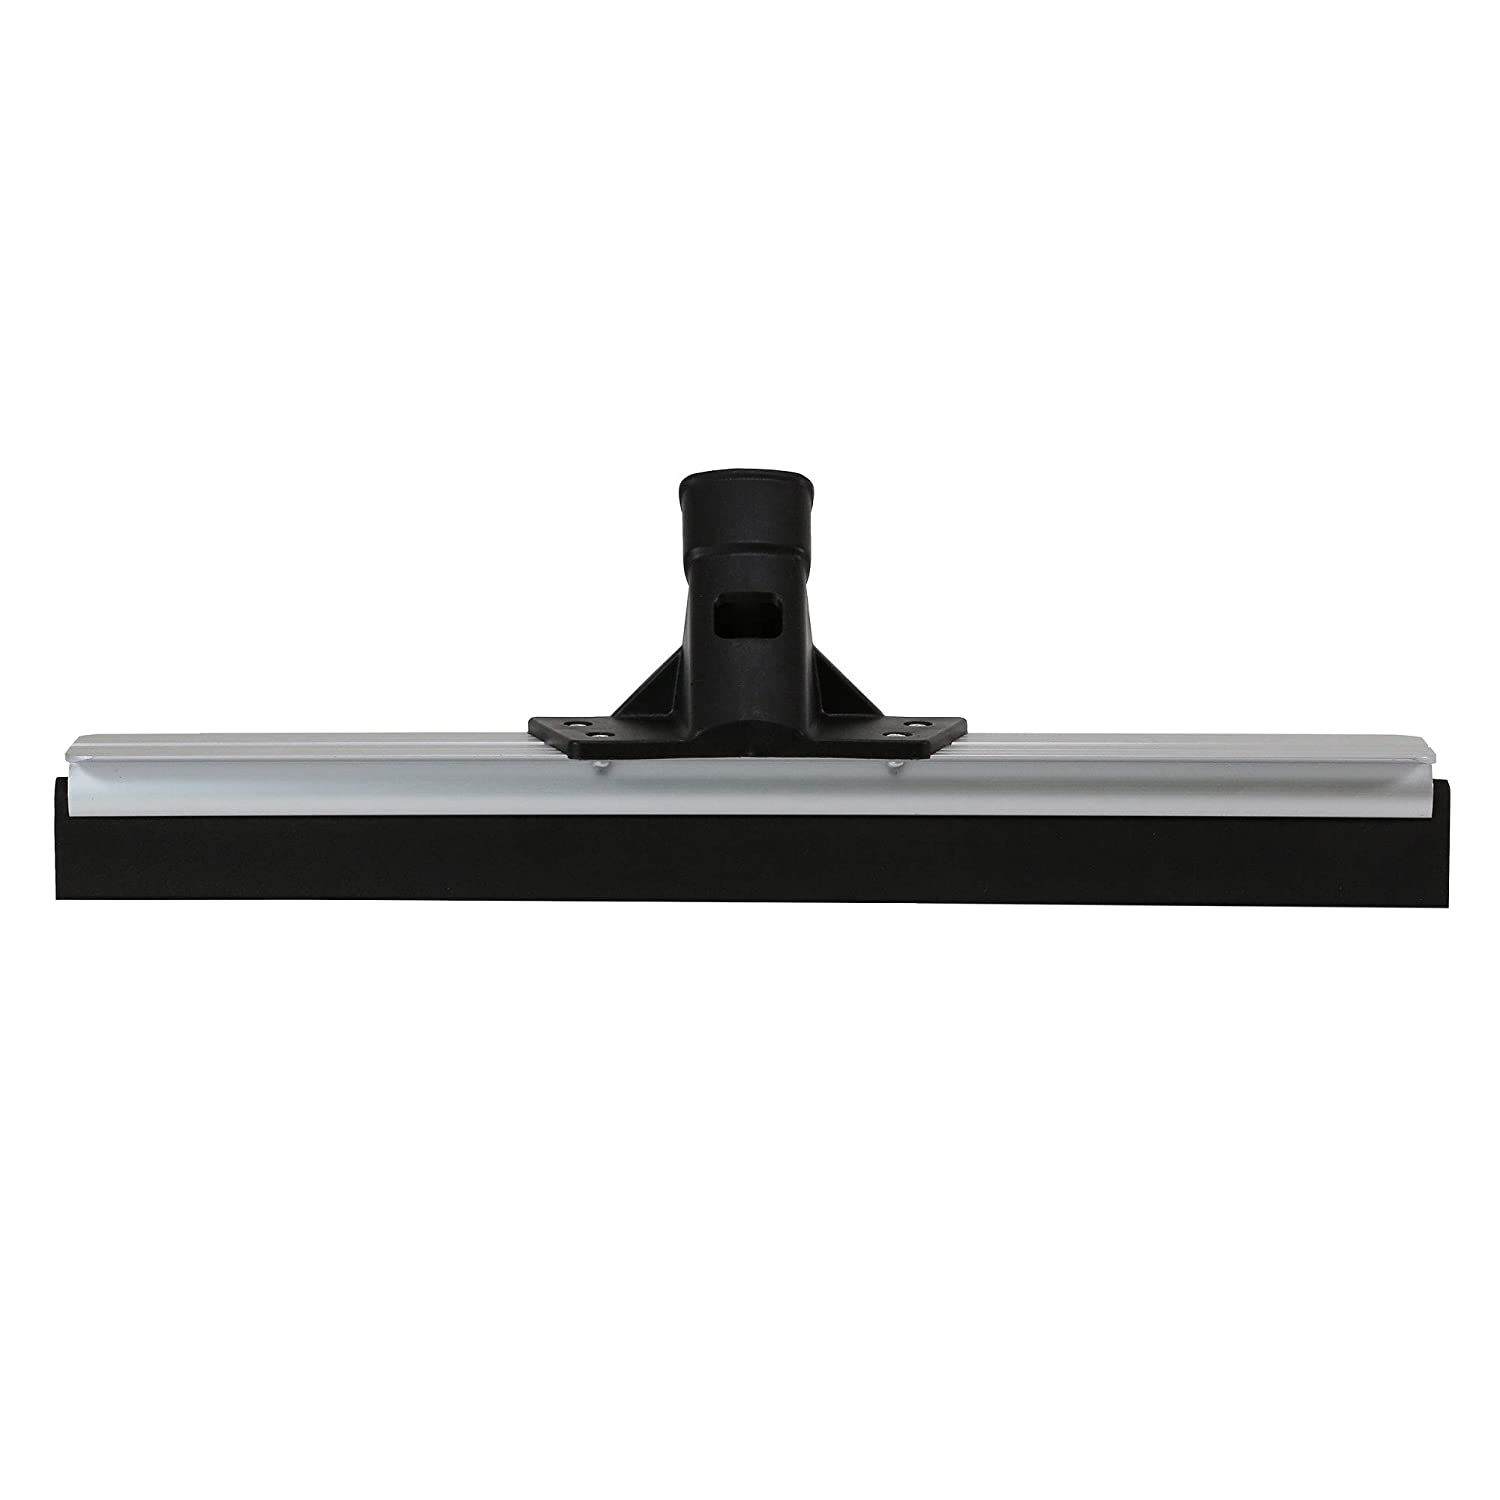 """Squeegee Head for Use on Smooth and Textured Surfaces Head Only SWOPT 24/"""" Floor Squeegee Head Interchangeable with Other SWOPT Products for More Efficient Cleaning and Storage 5135C6 Handle Sold Separately"""